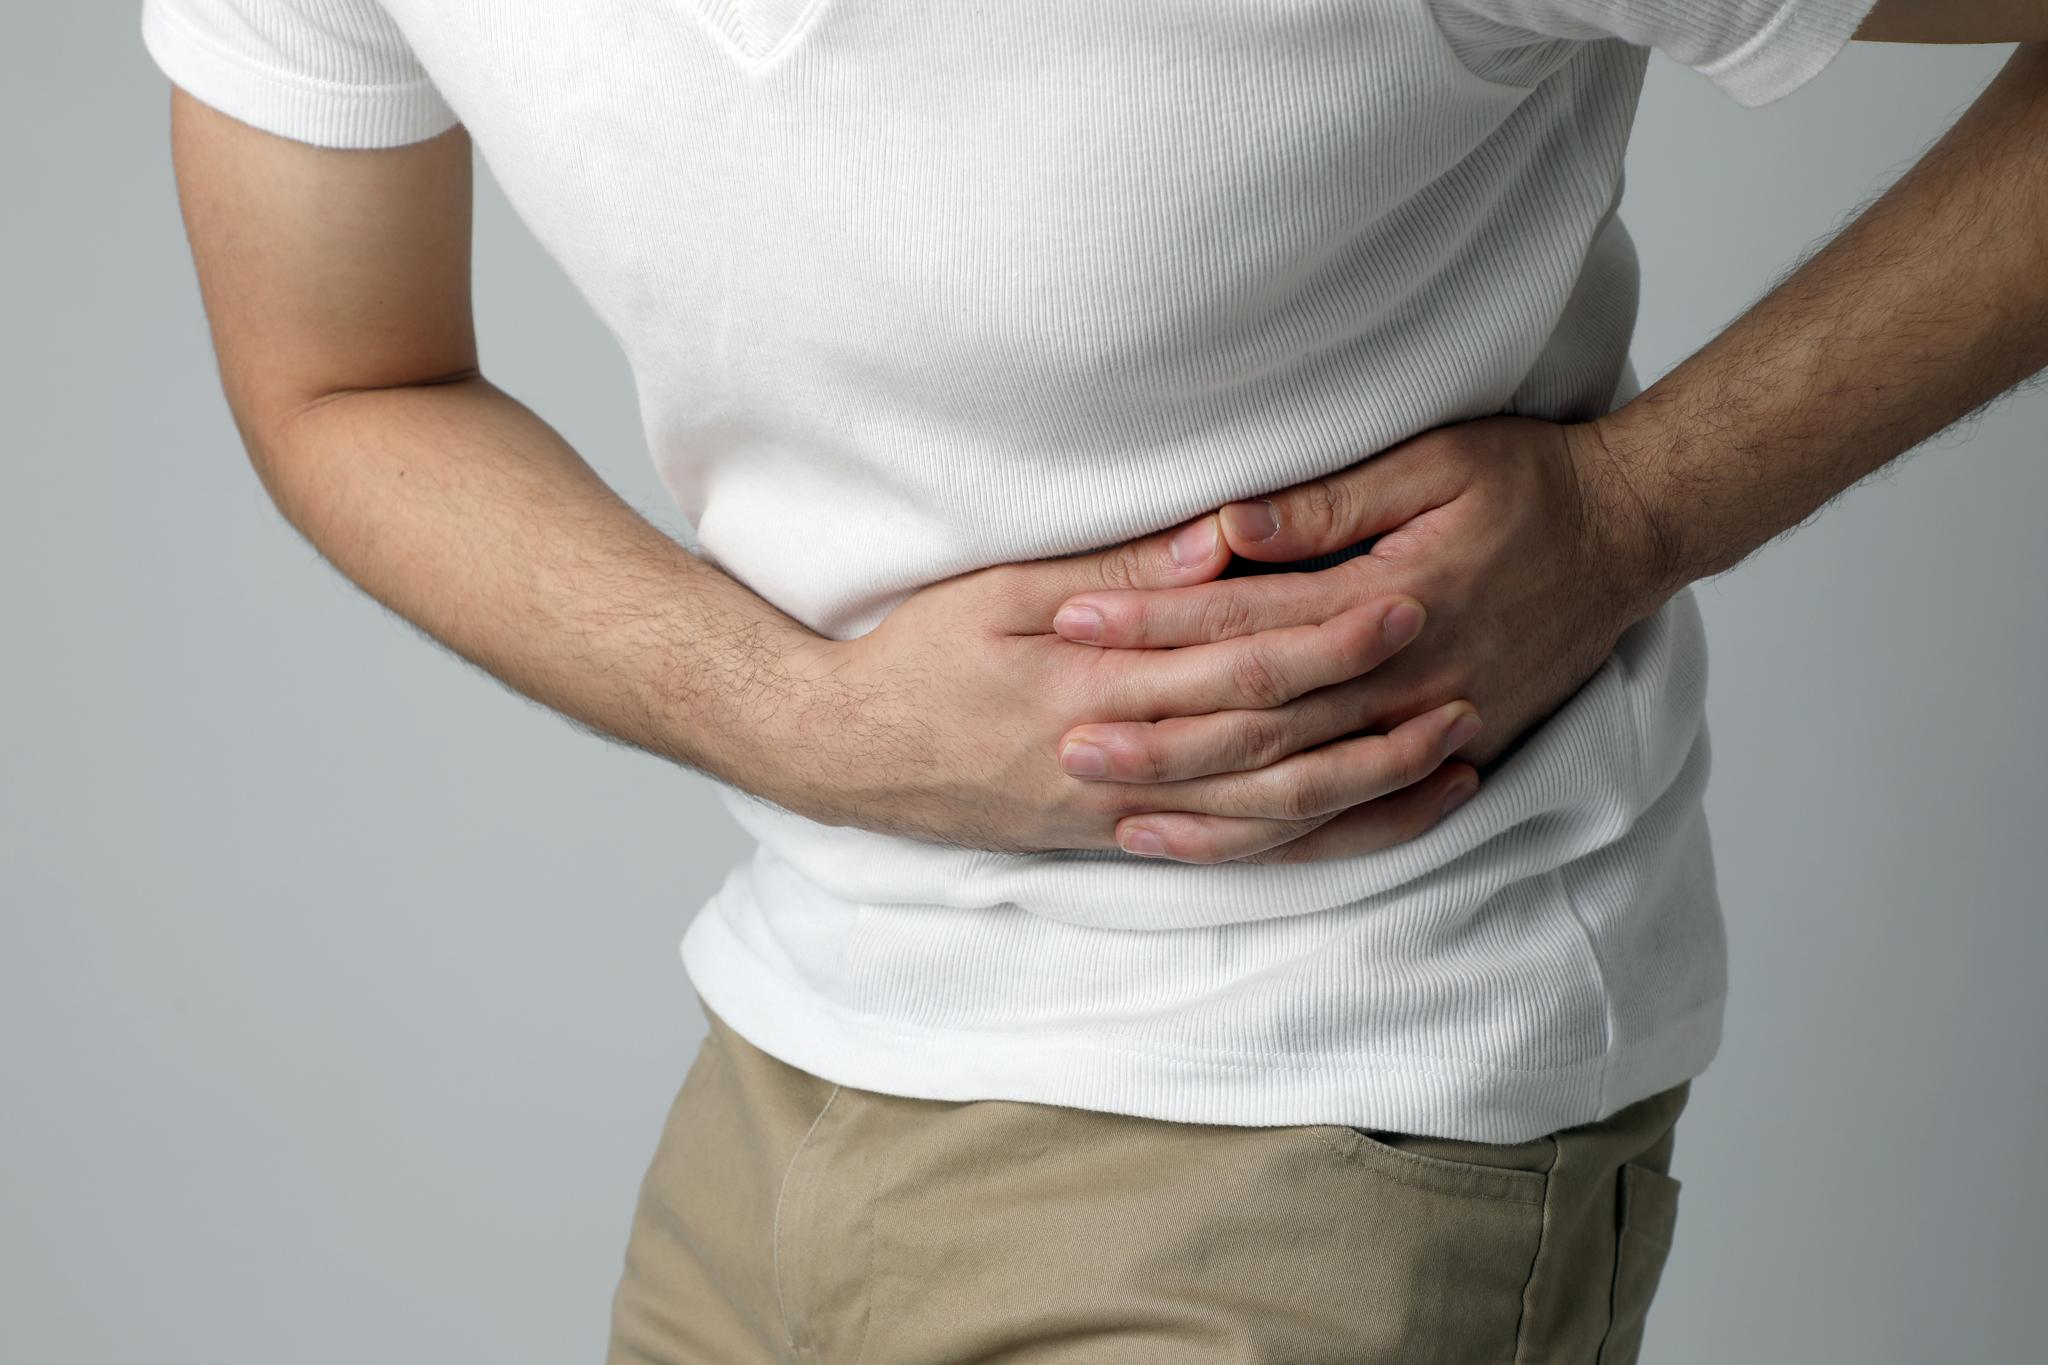 Kidney Stones Causes Symptoms Treatment And How To Prevent Them The Independent The Independent